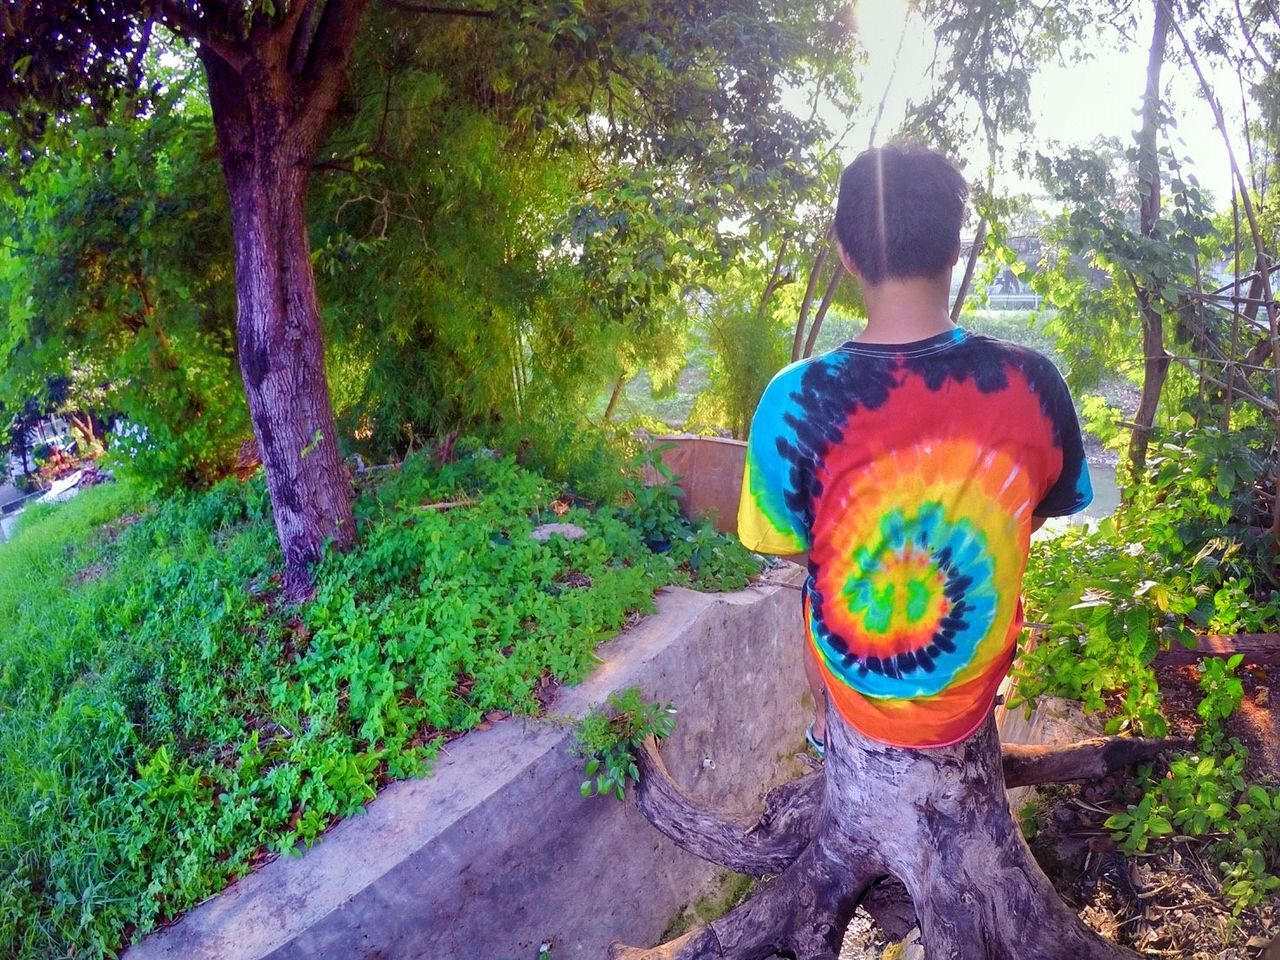 Relaxed to it's fullest Multi Colored One Person Tree Outdoors Cultures Eyem Gallery Live In Motion  Handphonephotograhy EyeEm Nature Lover Eyemphotography RASTA Relaxing Pshycedelic eyem vision Tranquil Scene Nature